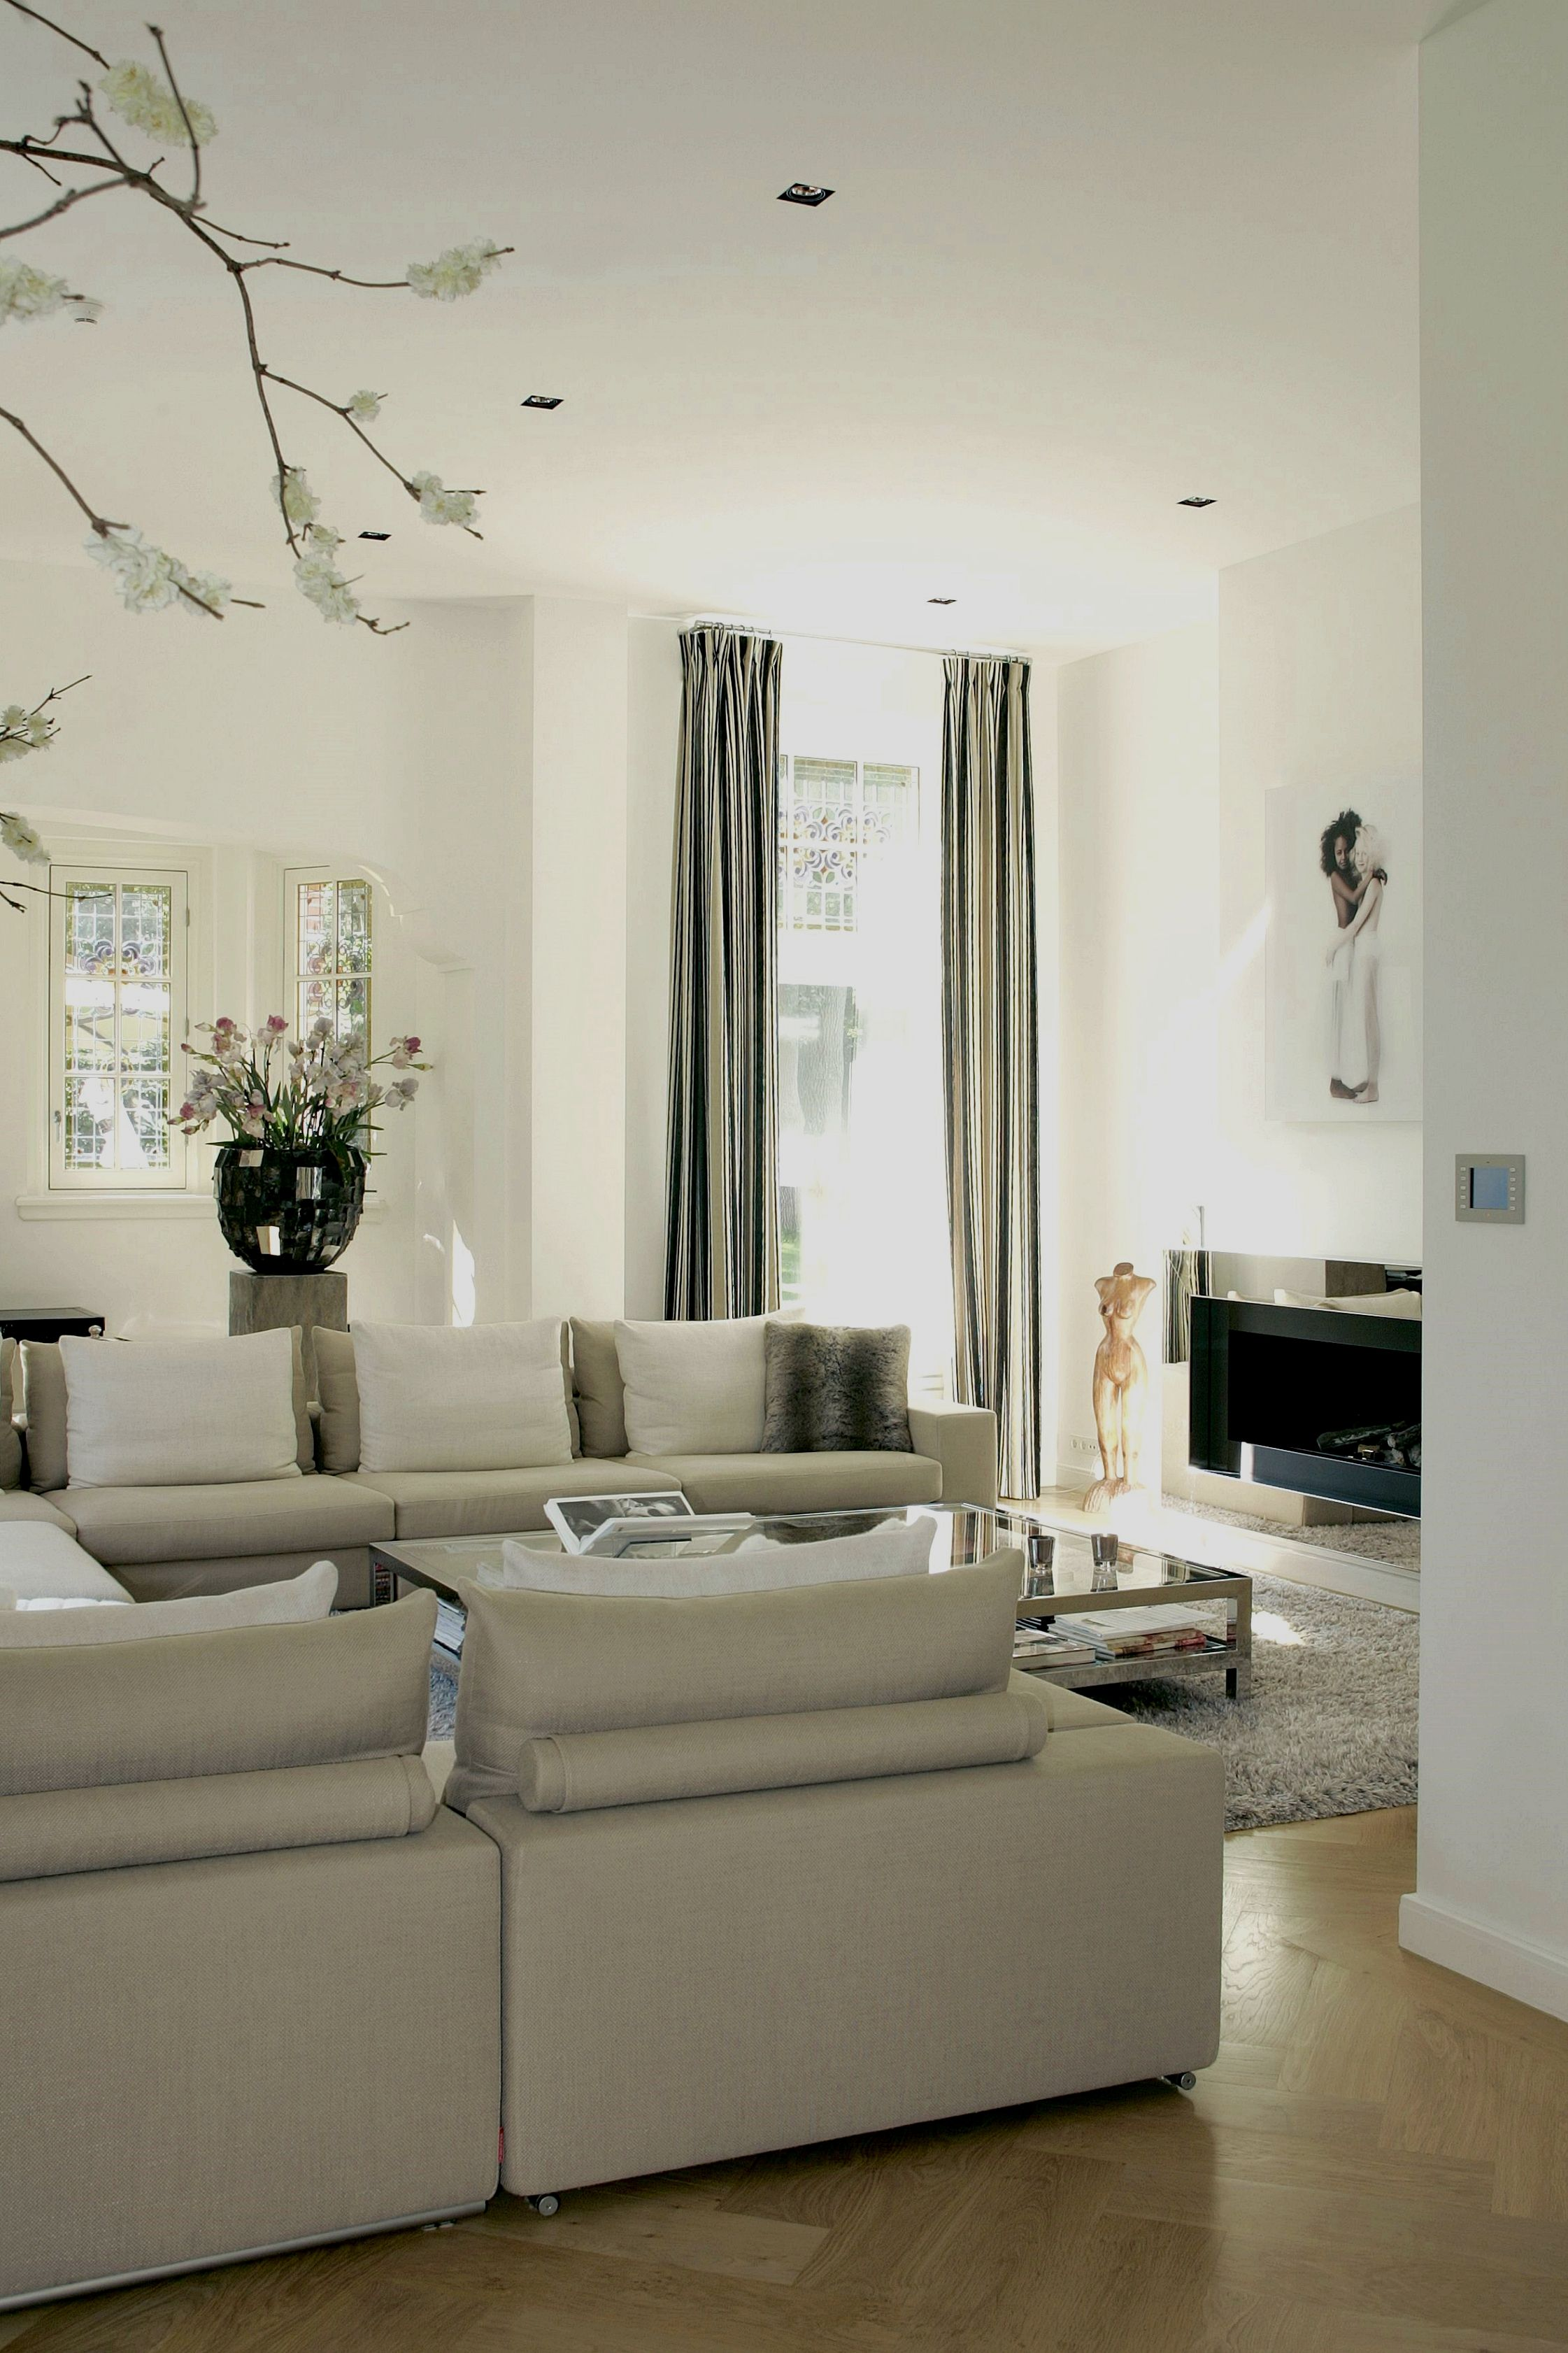 Easy and fun living room designs - Are you redesigning ... on Fun Living Room Ideas  id=37260